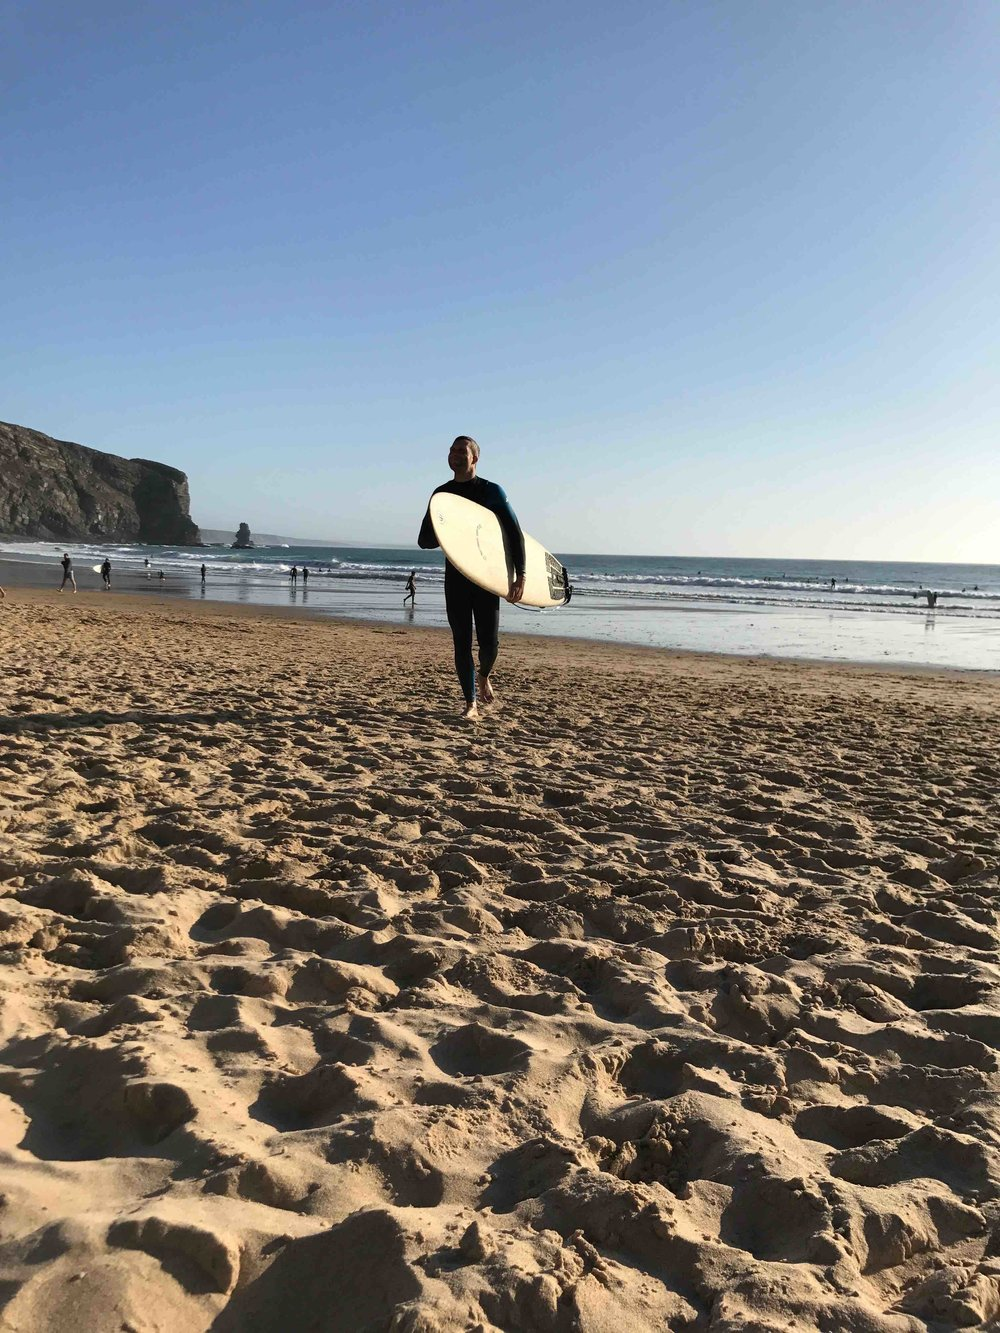 #disawistories #reiseblog #portugal #algarve #arrifana #surfen #alex.jpg